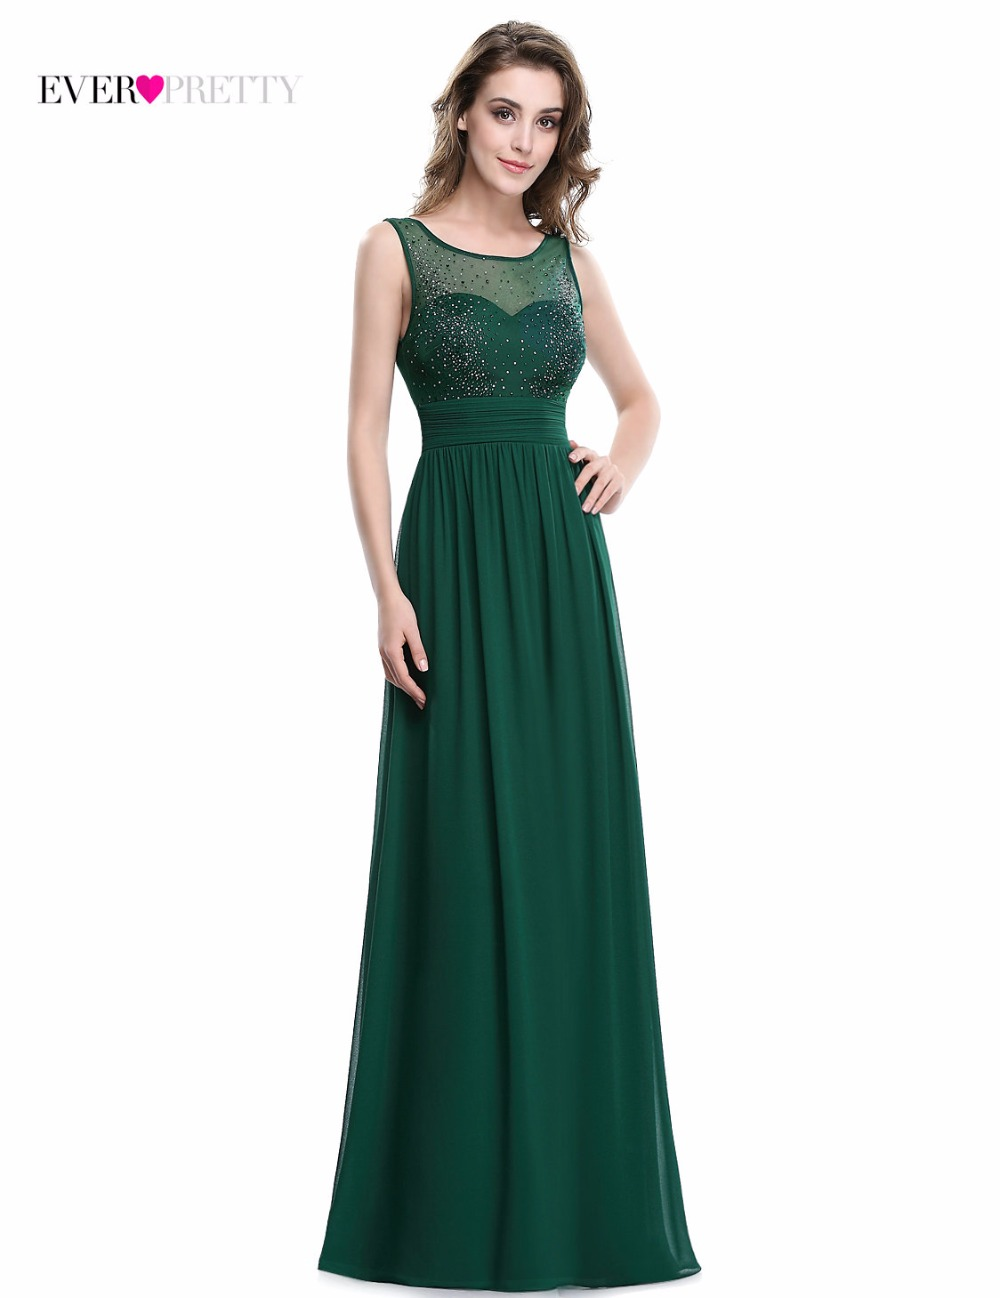 Elegant Long Evening Dress Ever pretty EP08784 2017 Real Picture Green Chiffon A-Line Sleeveless Beadings Evening Party Gowns mint green casual sleeveless hooded top